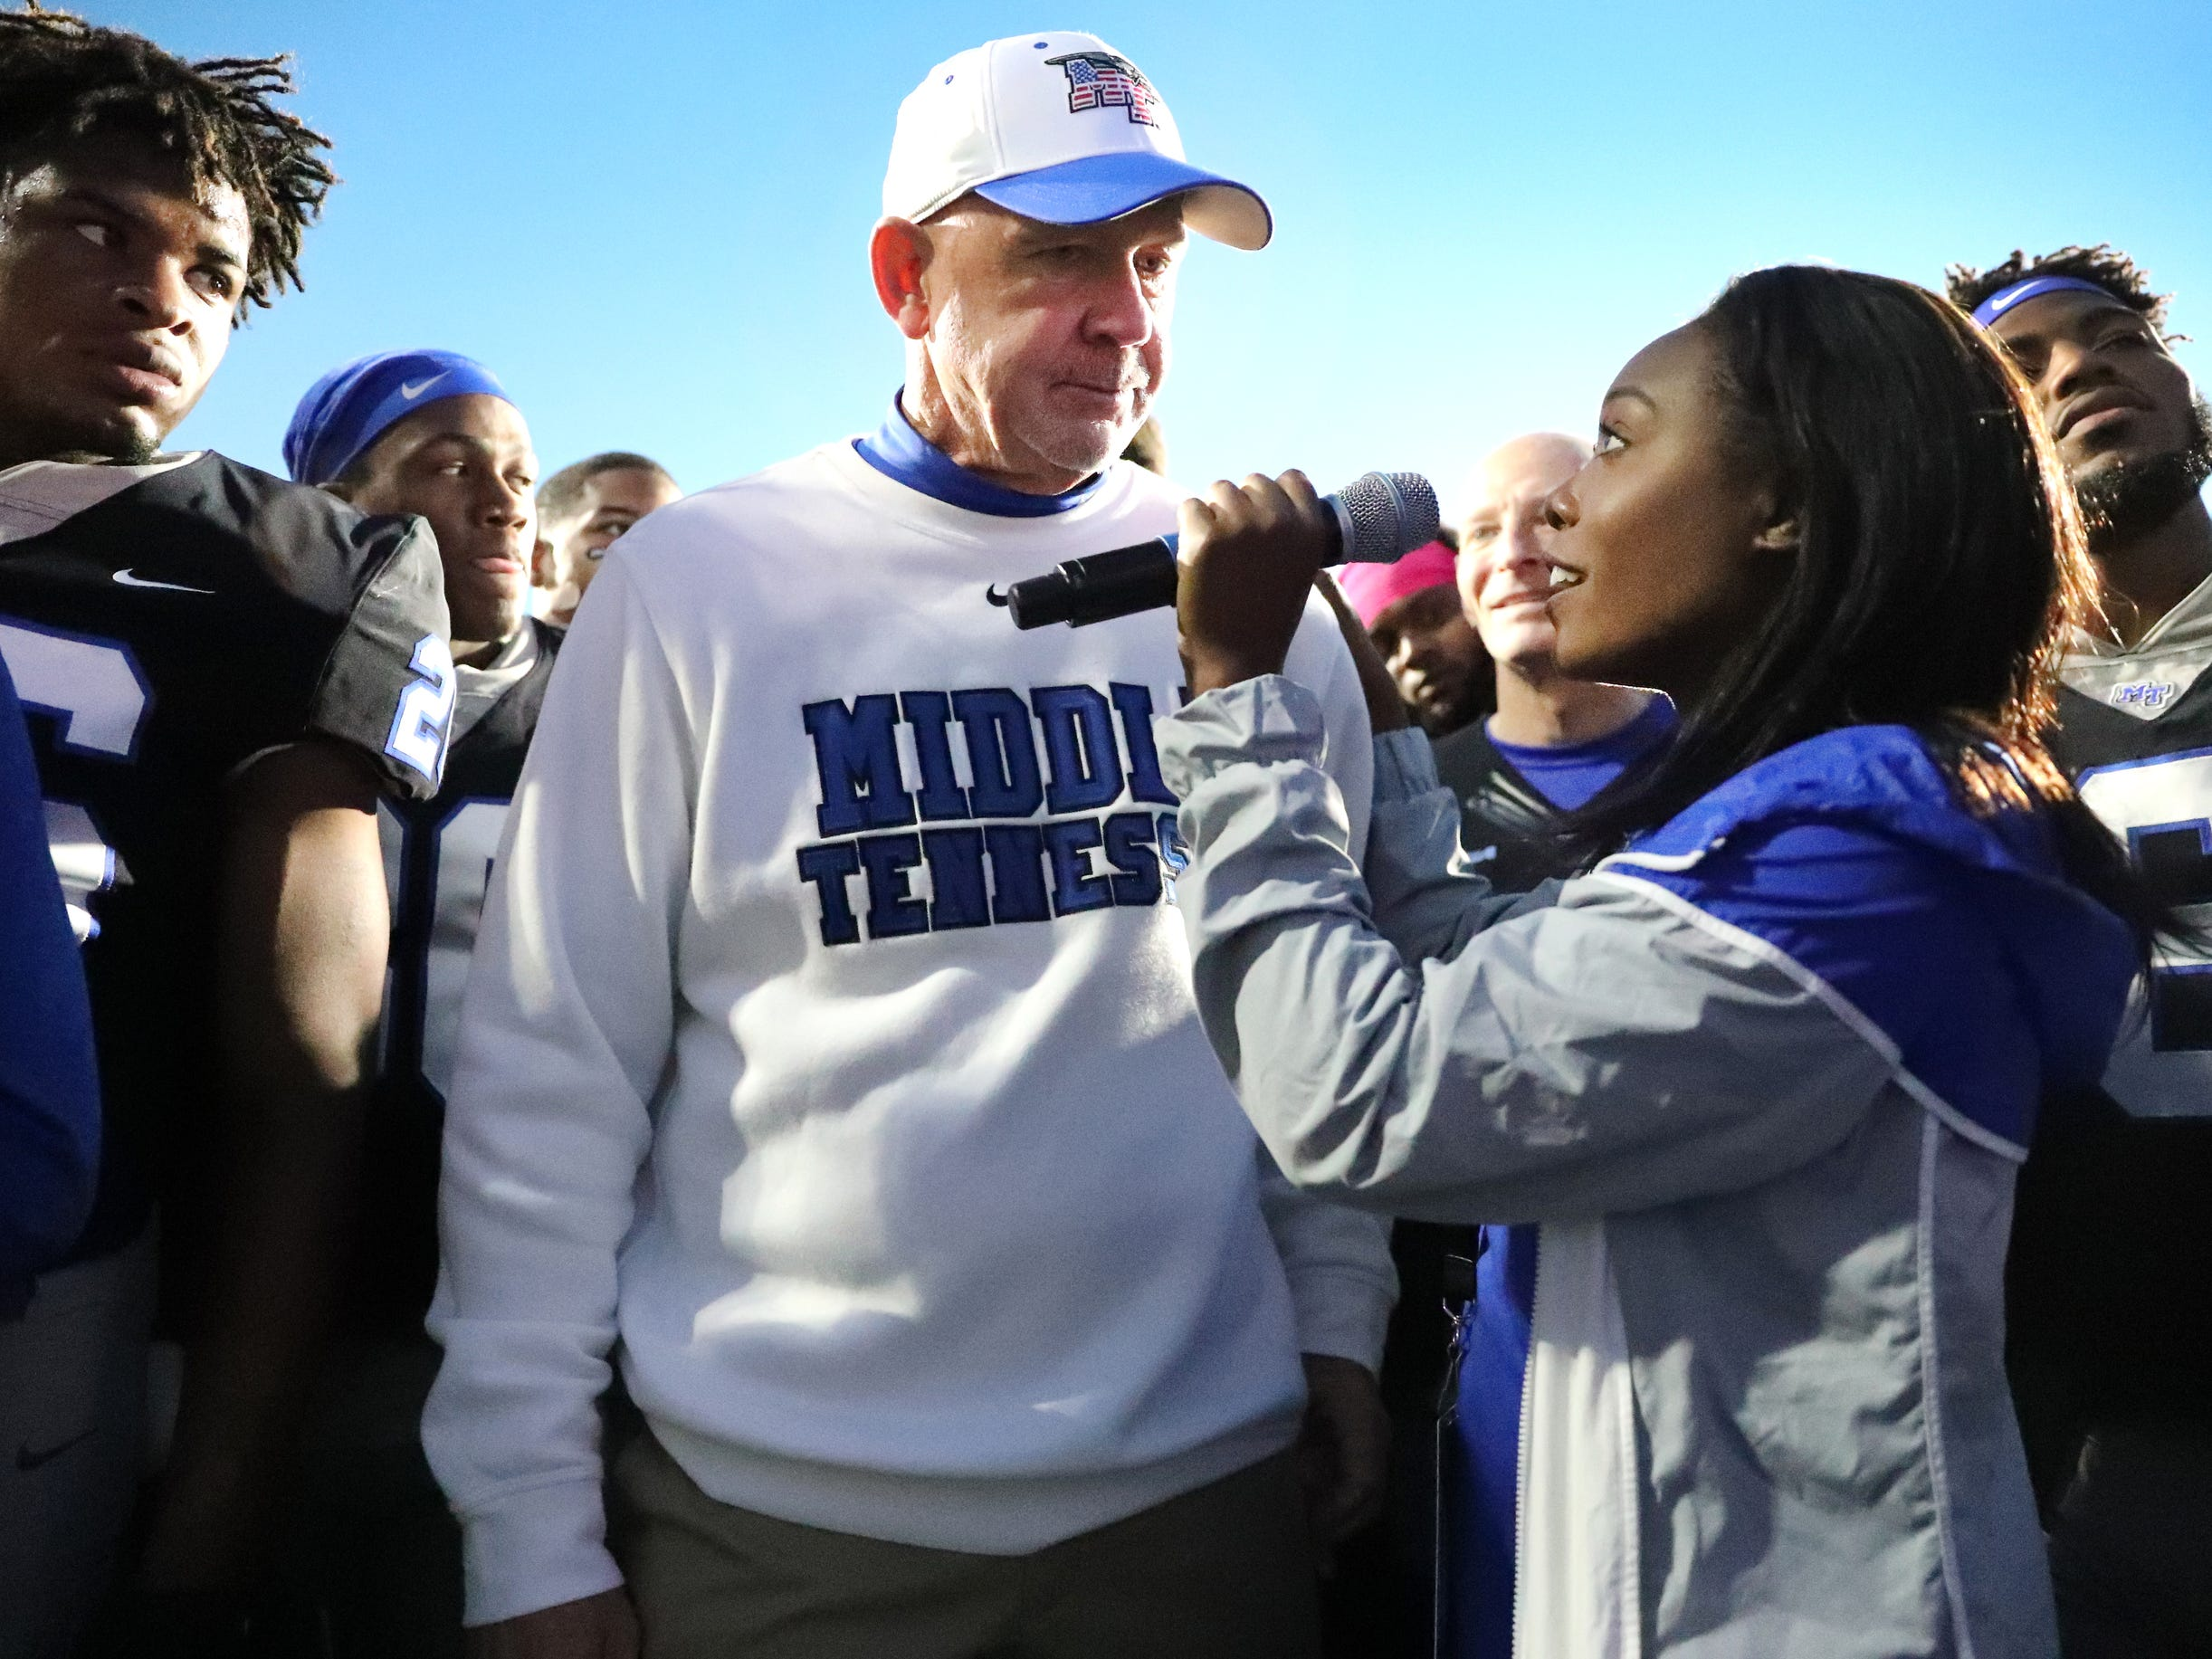 MTSU's head coach Rick Stockstill is interviewed by Chelsea Floyd, with MTSU marketing, after MTSU's win over UAB and the announcement that MTSU is the 2018 C-USA East Division Champions and will host the Conference USA Championship next week.